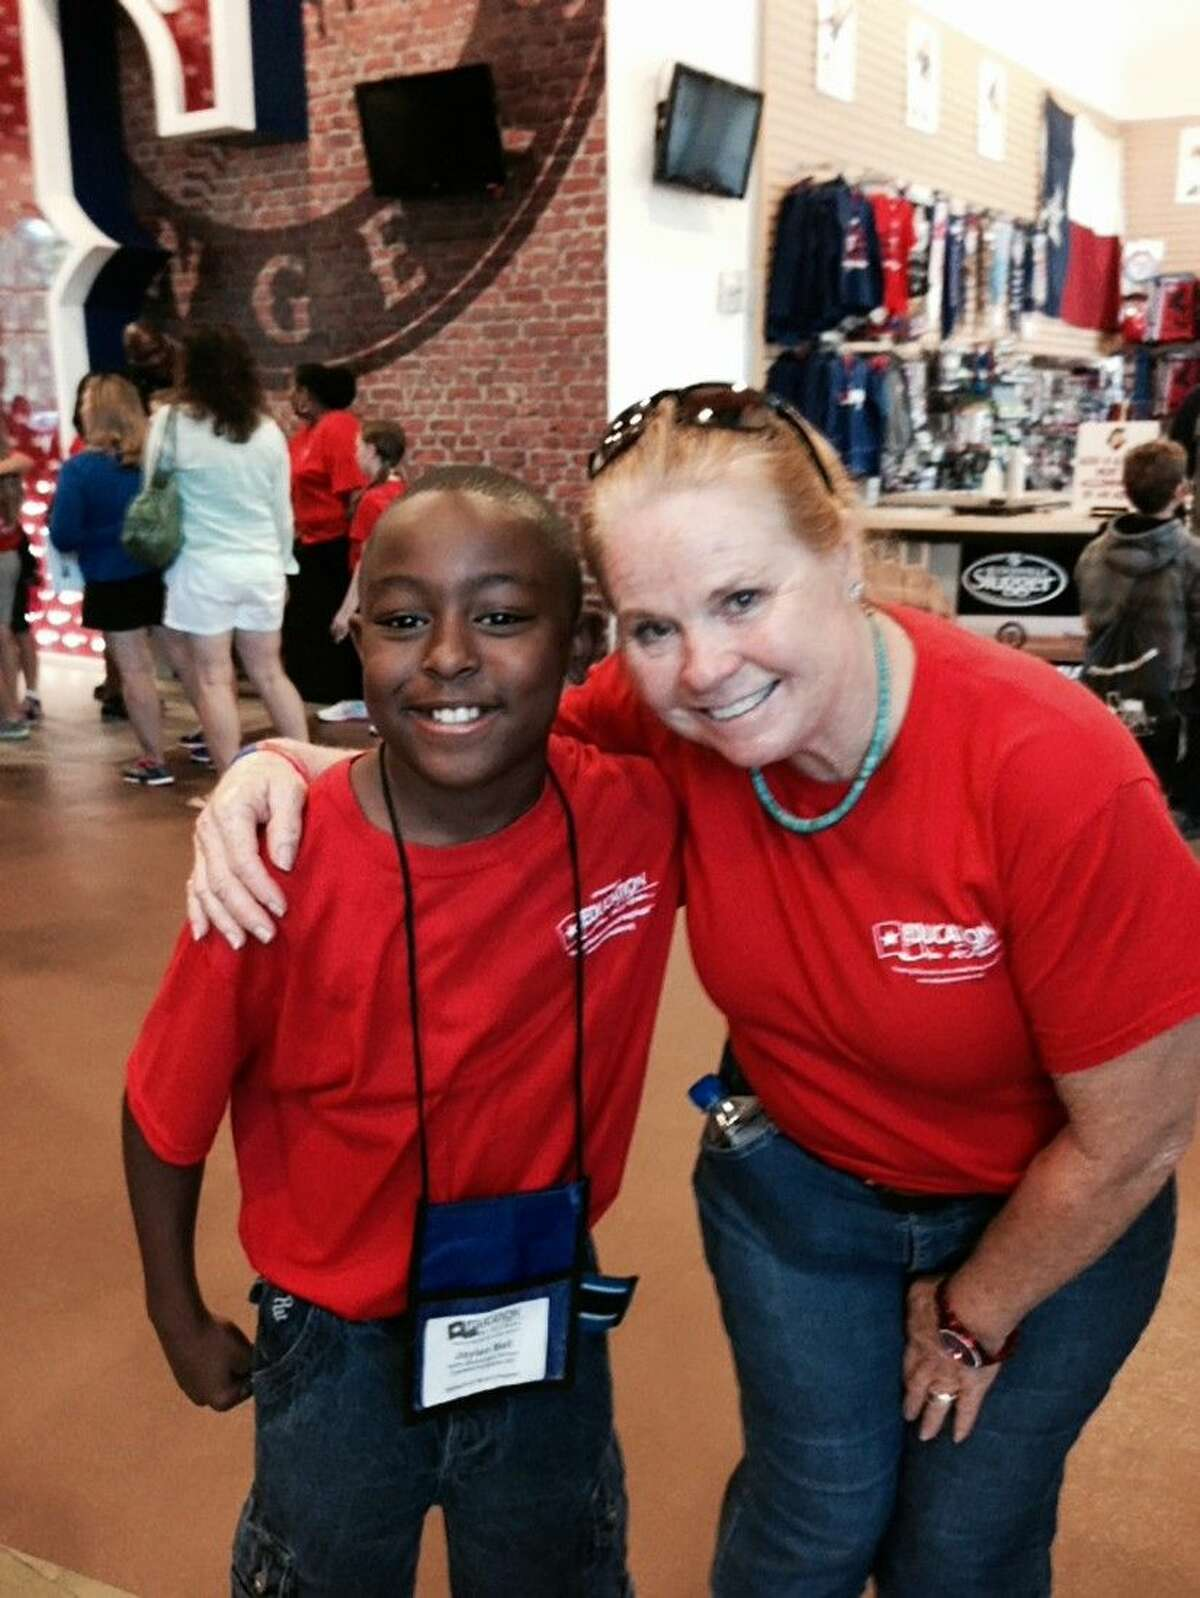 Keith Elementary School fourth-grade student Jaylen Bell stops for a picture with a Lone Star Leadership Academy representative during a Dallas/Fort Worth camp stop to Globe Life Park in Arlington - home to the Texas Rangers baseball team - on June 19.